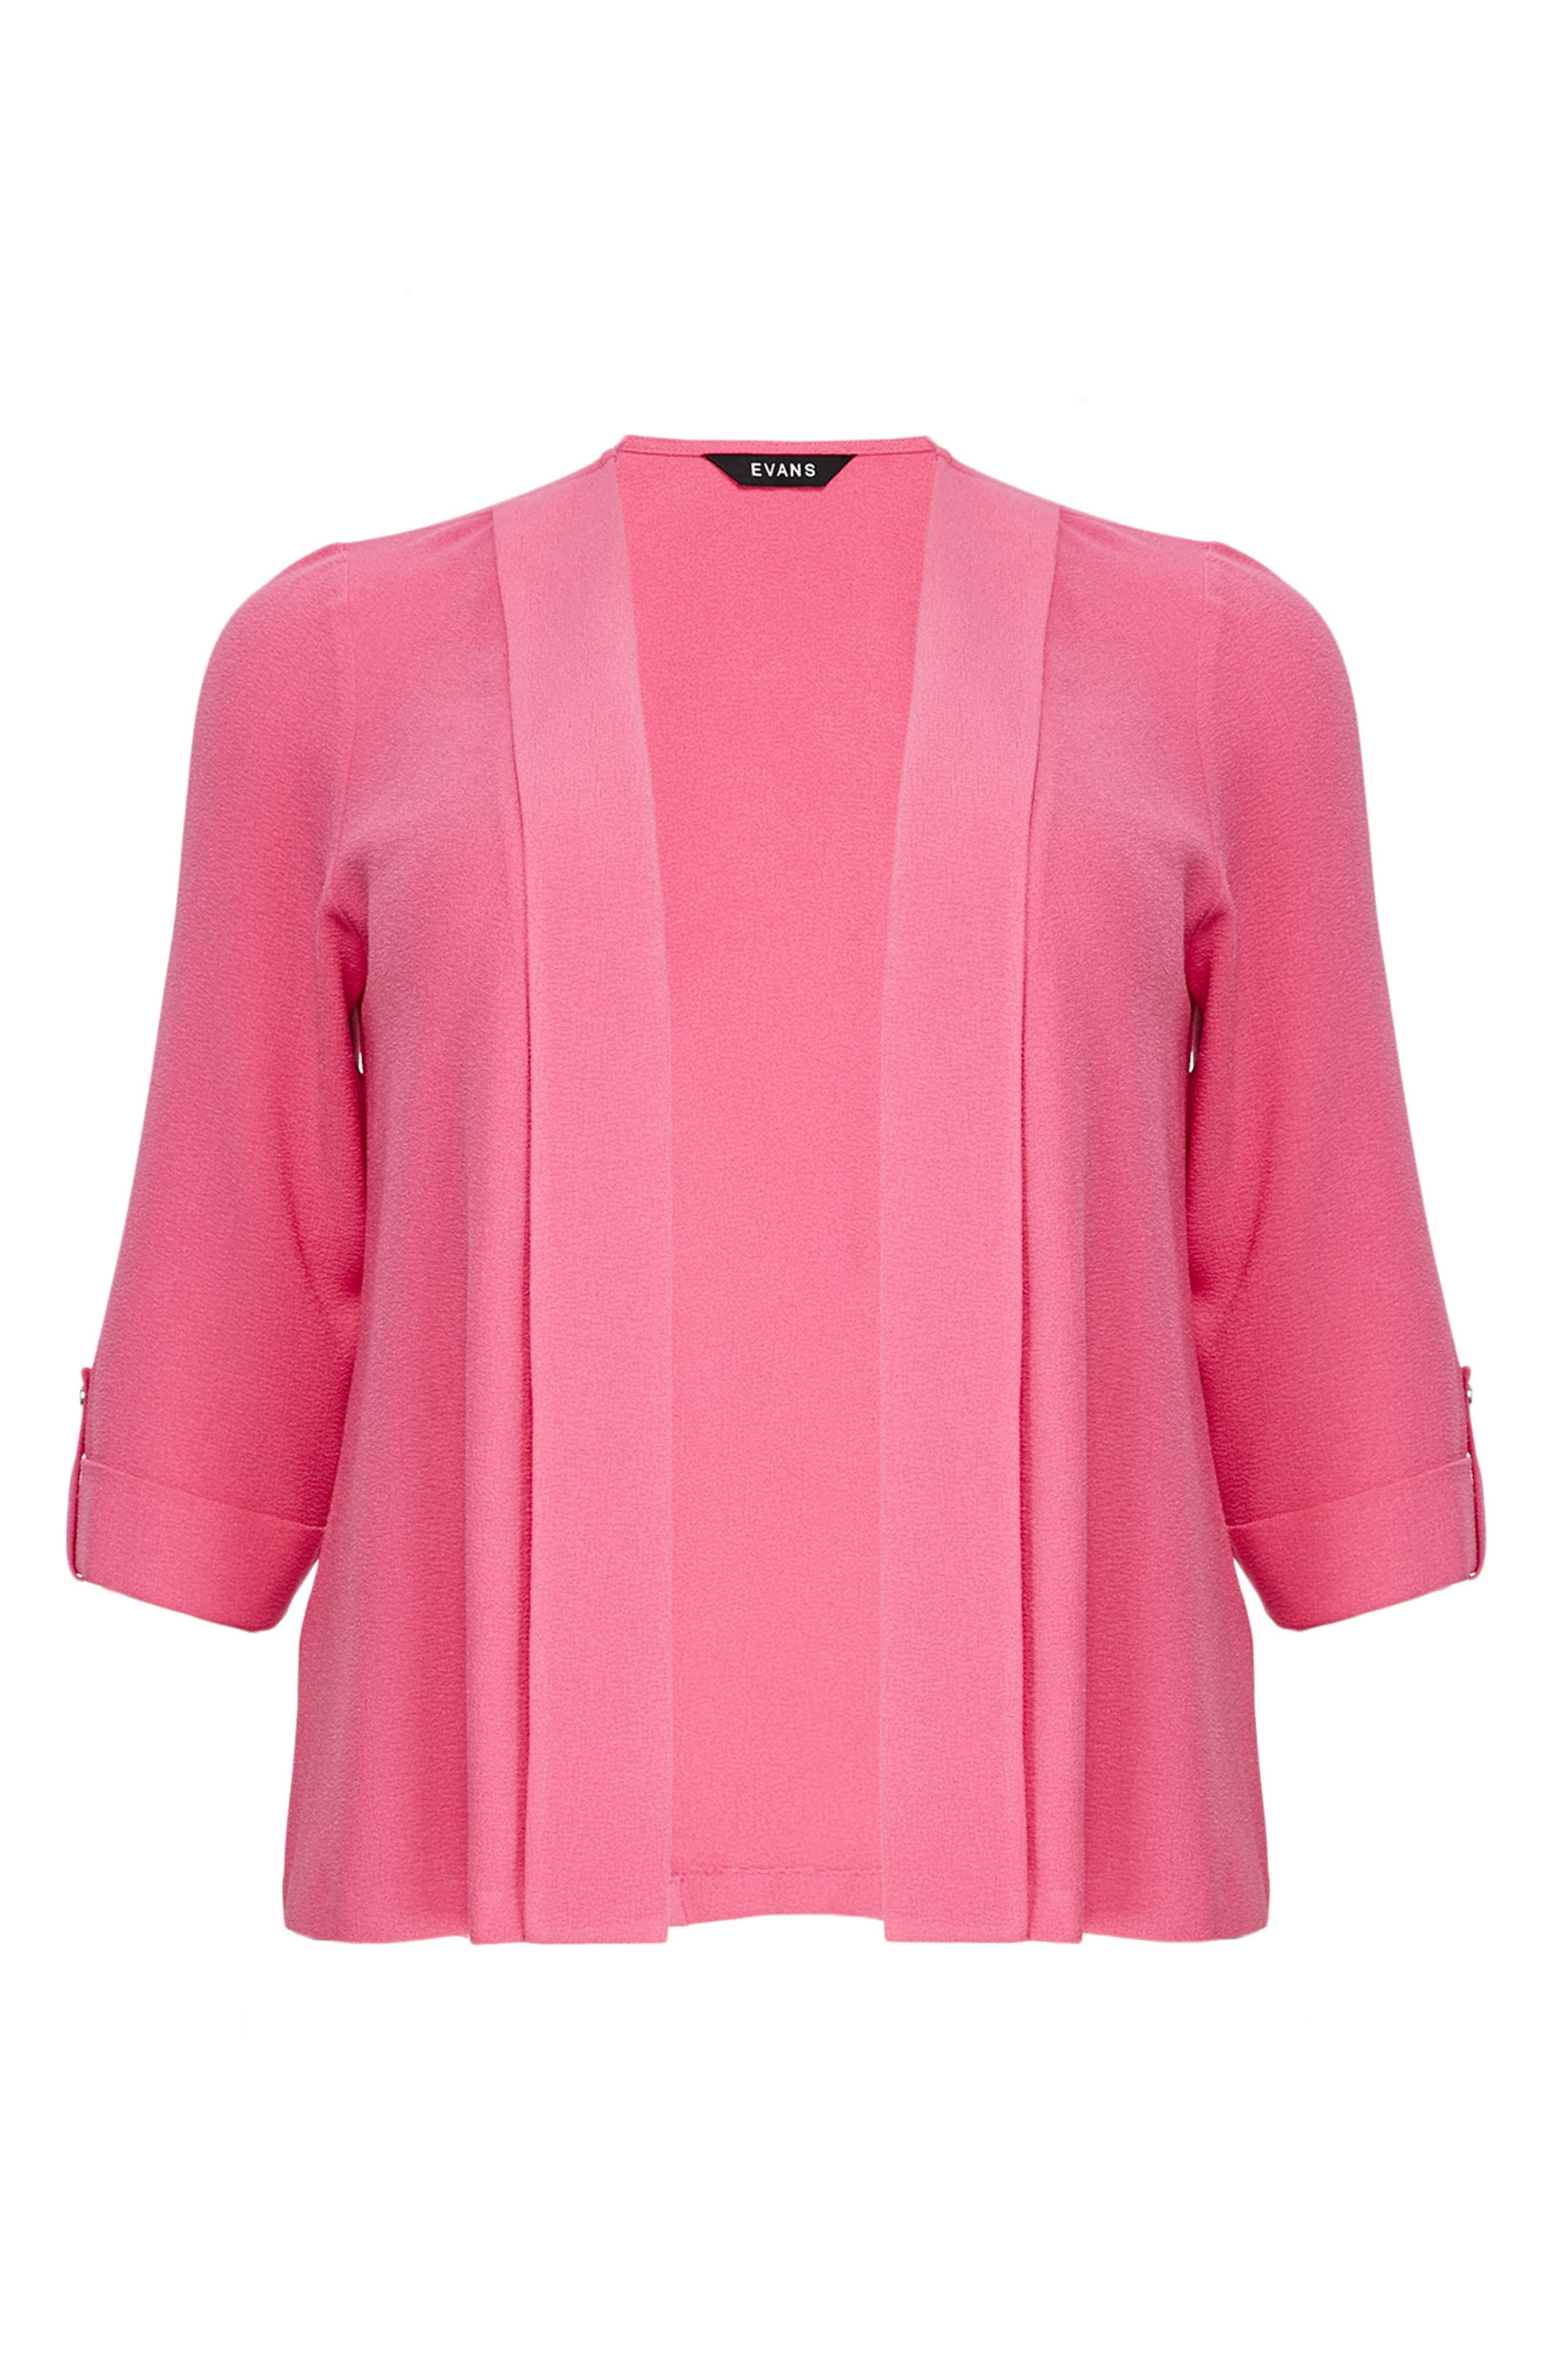 Three-Quarter Sleeve Jacket,                         Main,                         color, Pink